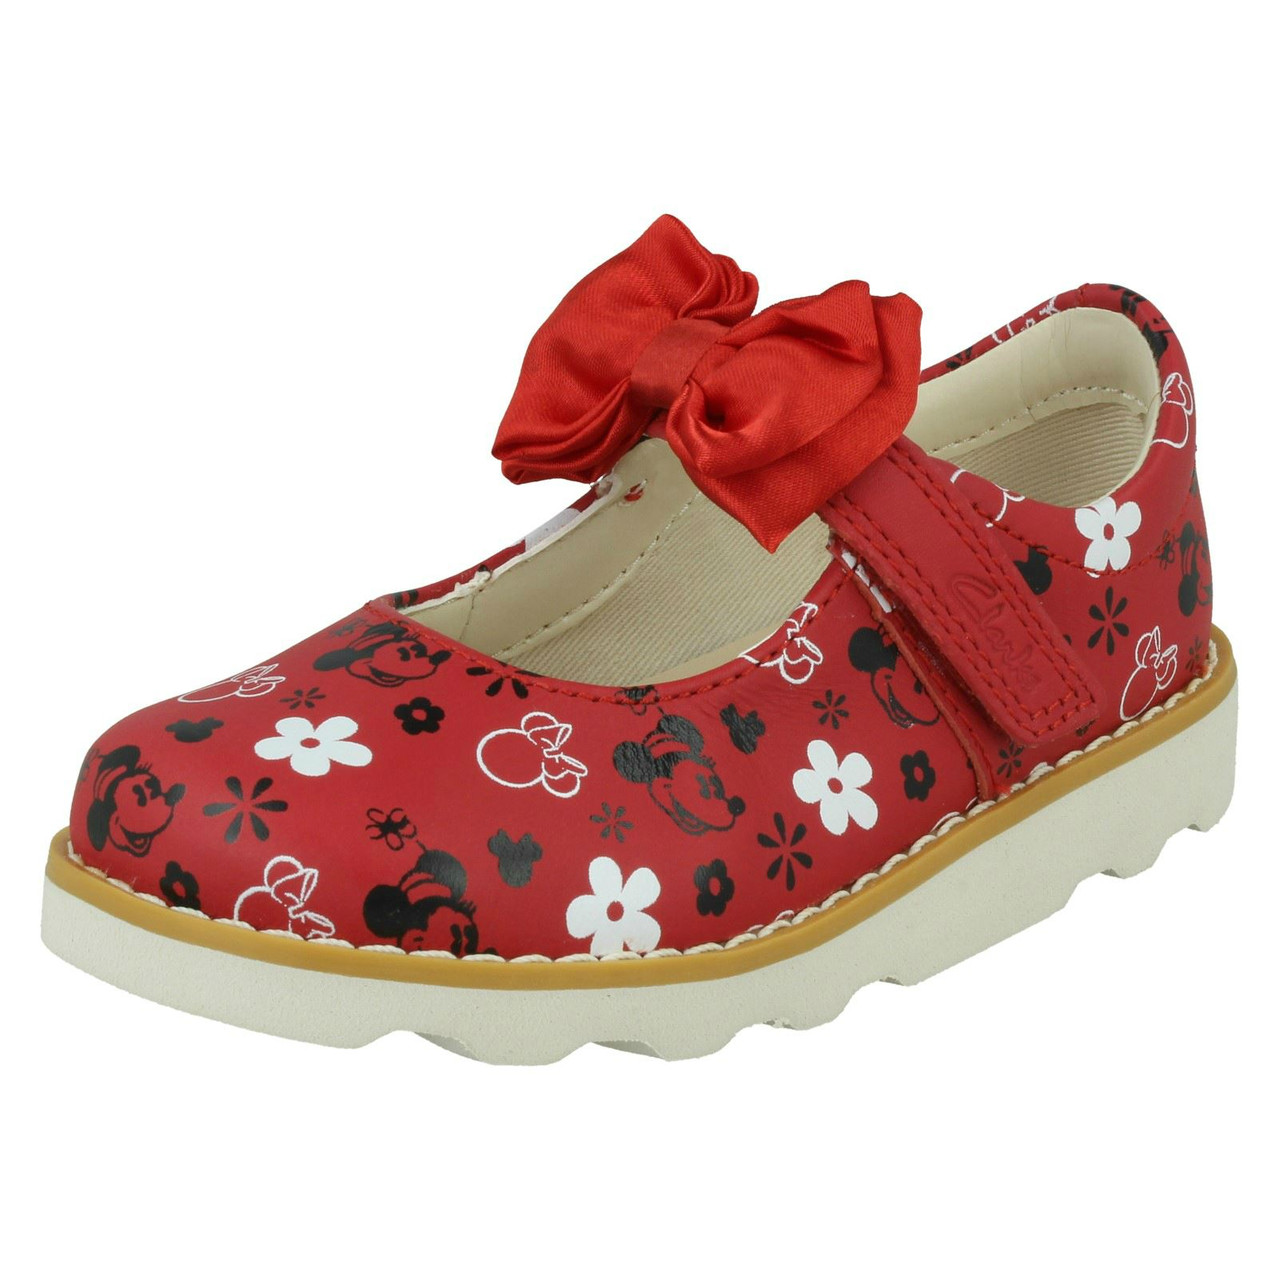 Girls Clarks Minnie Mouse Design Shoes